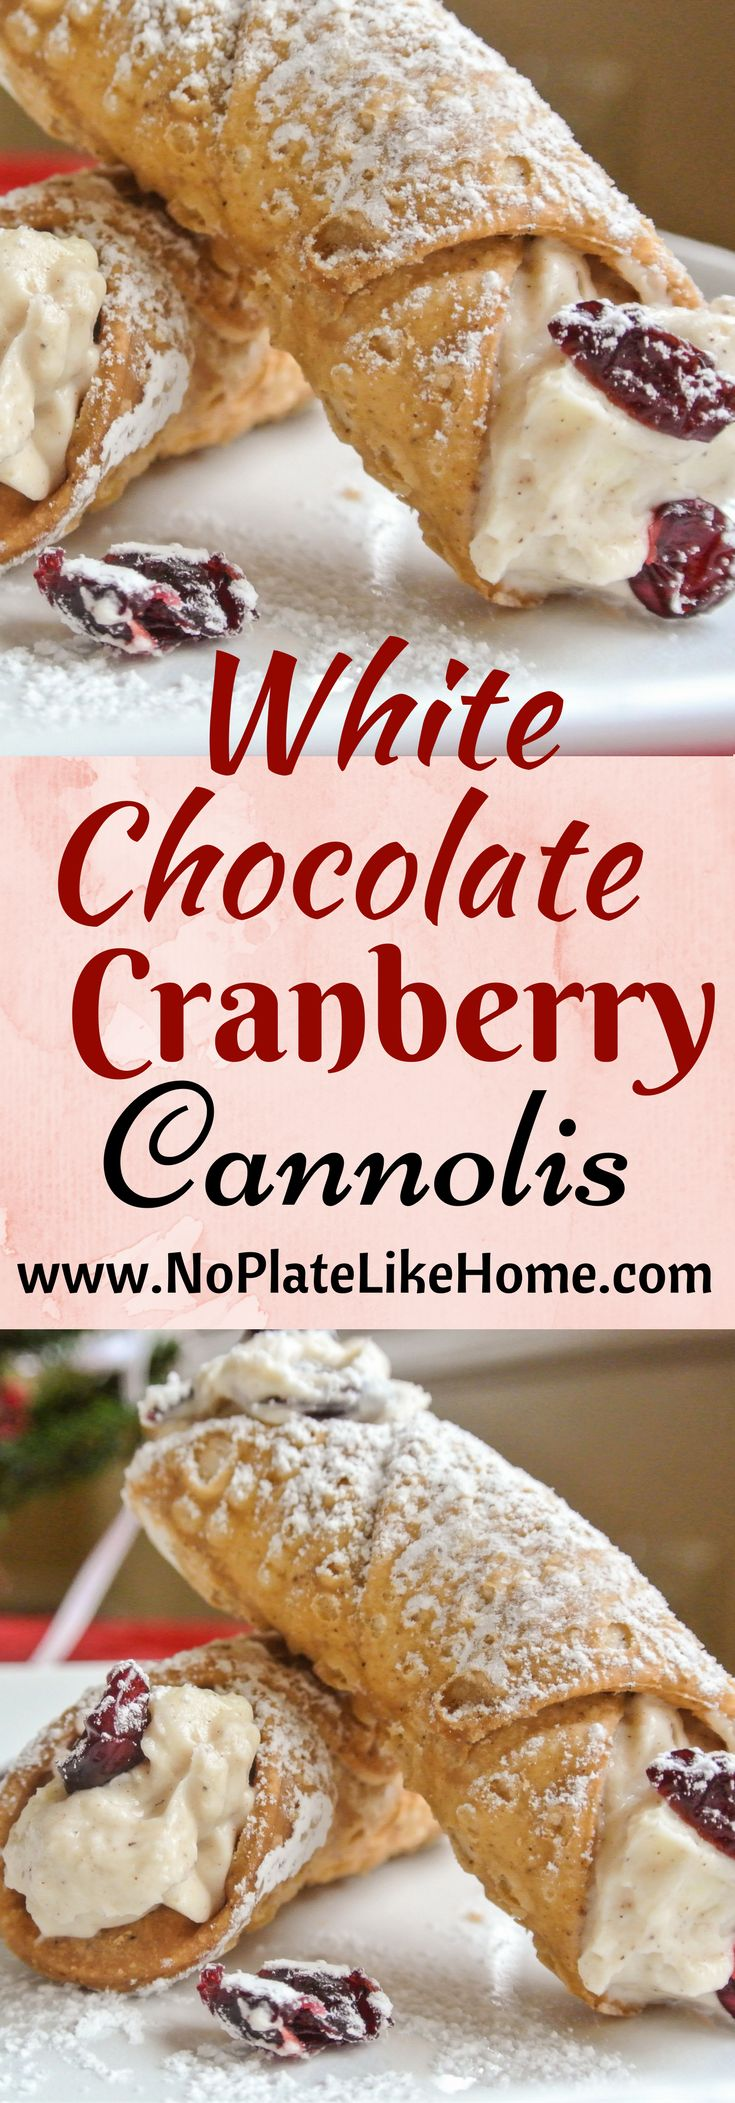 Easy White Chocolate Cranberry Cannolis made with cream cheese, dried cranberries, white chocolate, cinnamon, vanilla and powdered sugar. A great for Christmas, Valentine's Day, Easter or any occasion. Pin for later!